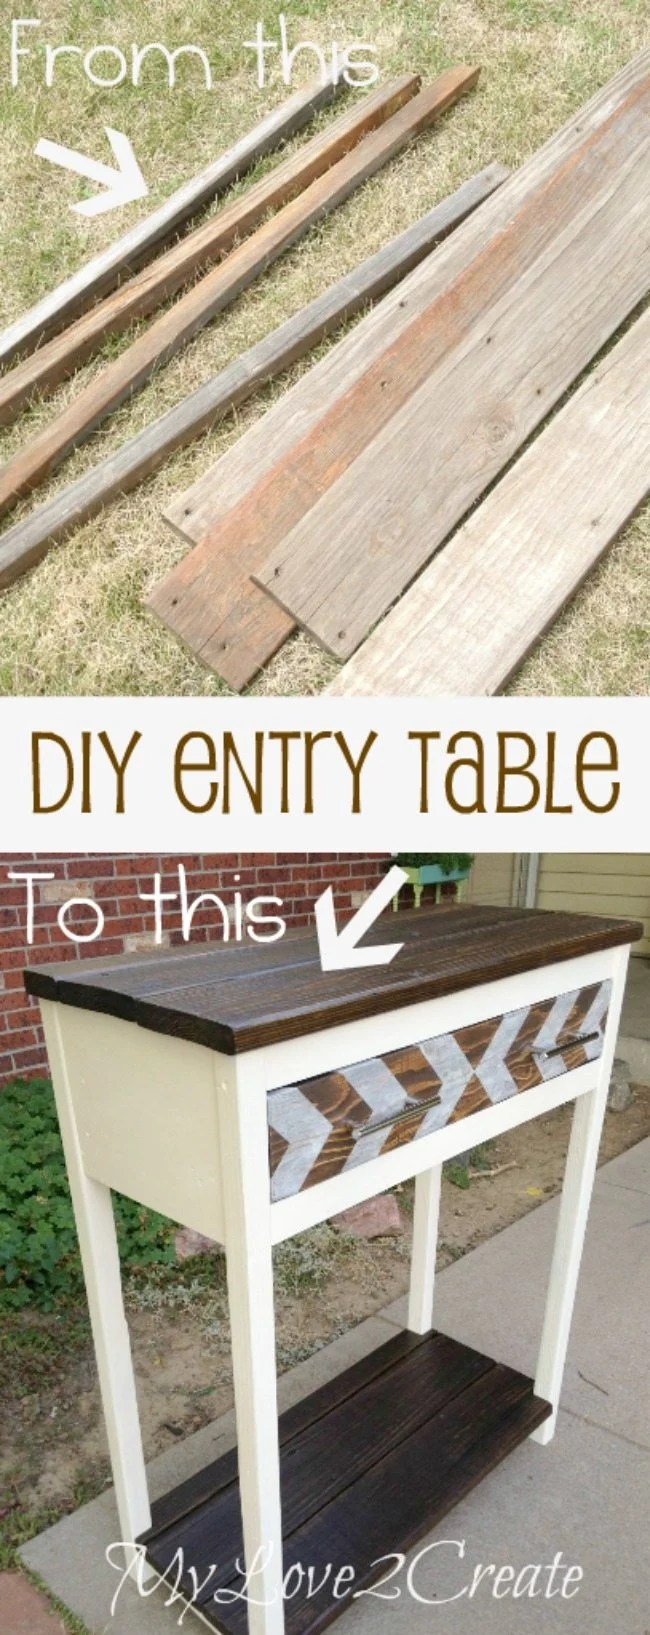 Entry Table made with old deck and scrap wood, before and after